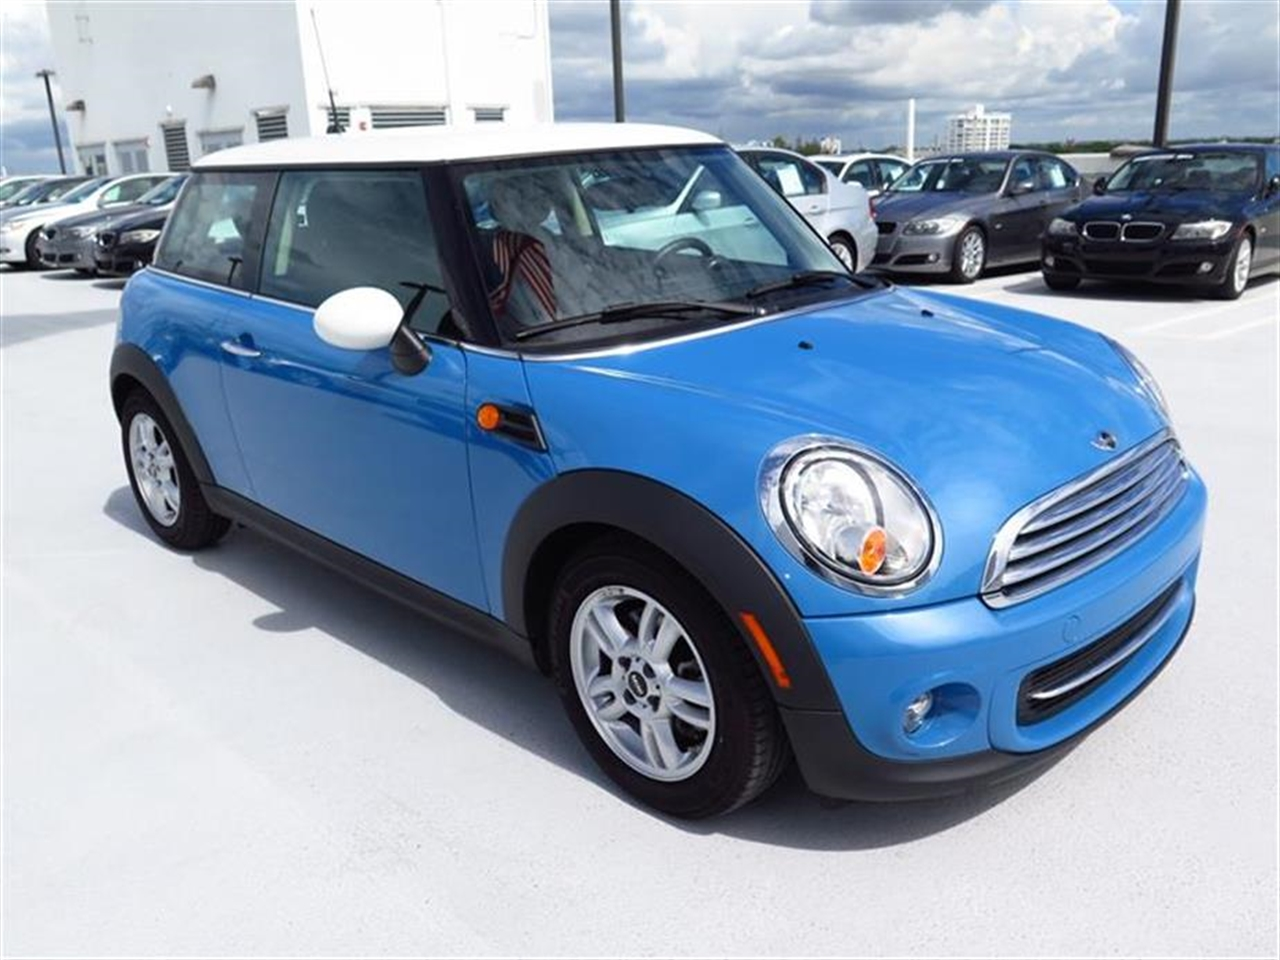 2013 MINI COOPER HARDTOP 2dr Cpe 10968 miles 1 rear cup holder 12V auxiliary pwr outlet in cock